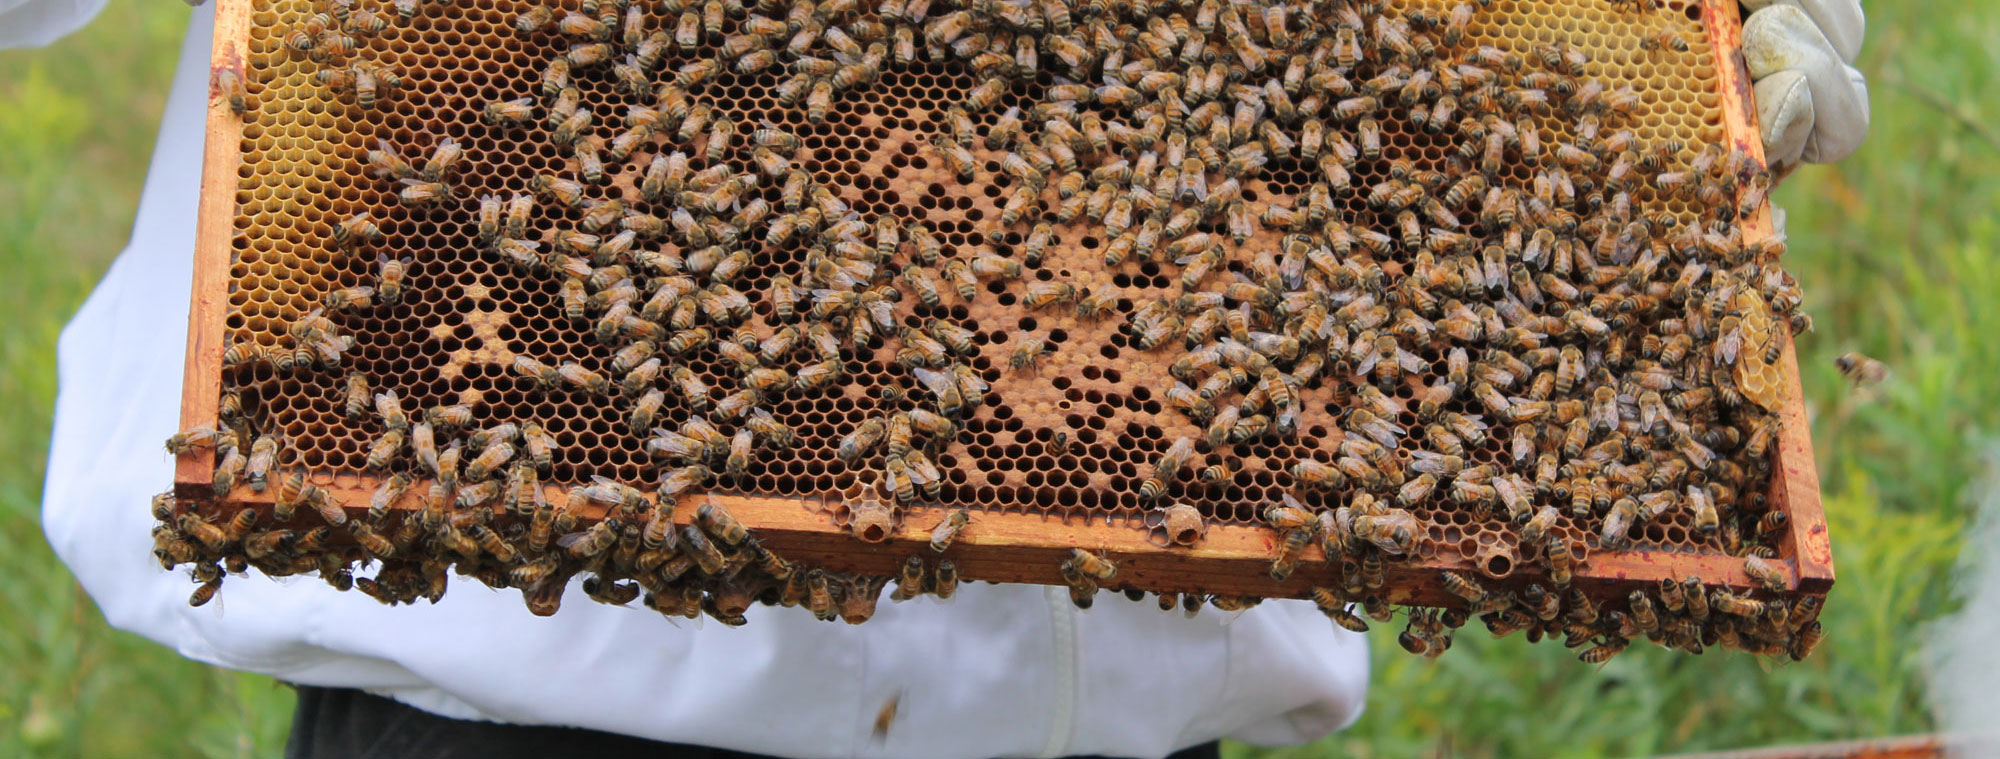 bees_0798